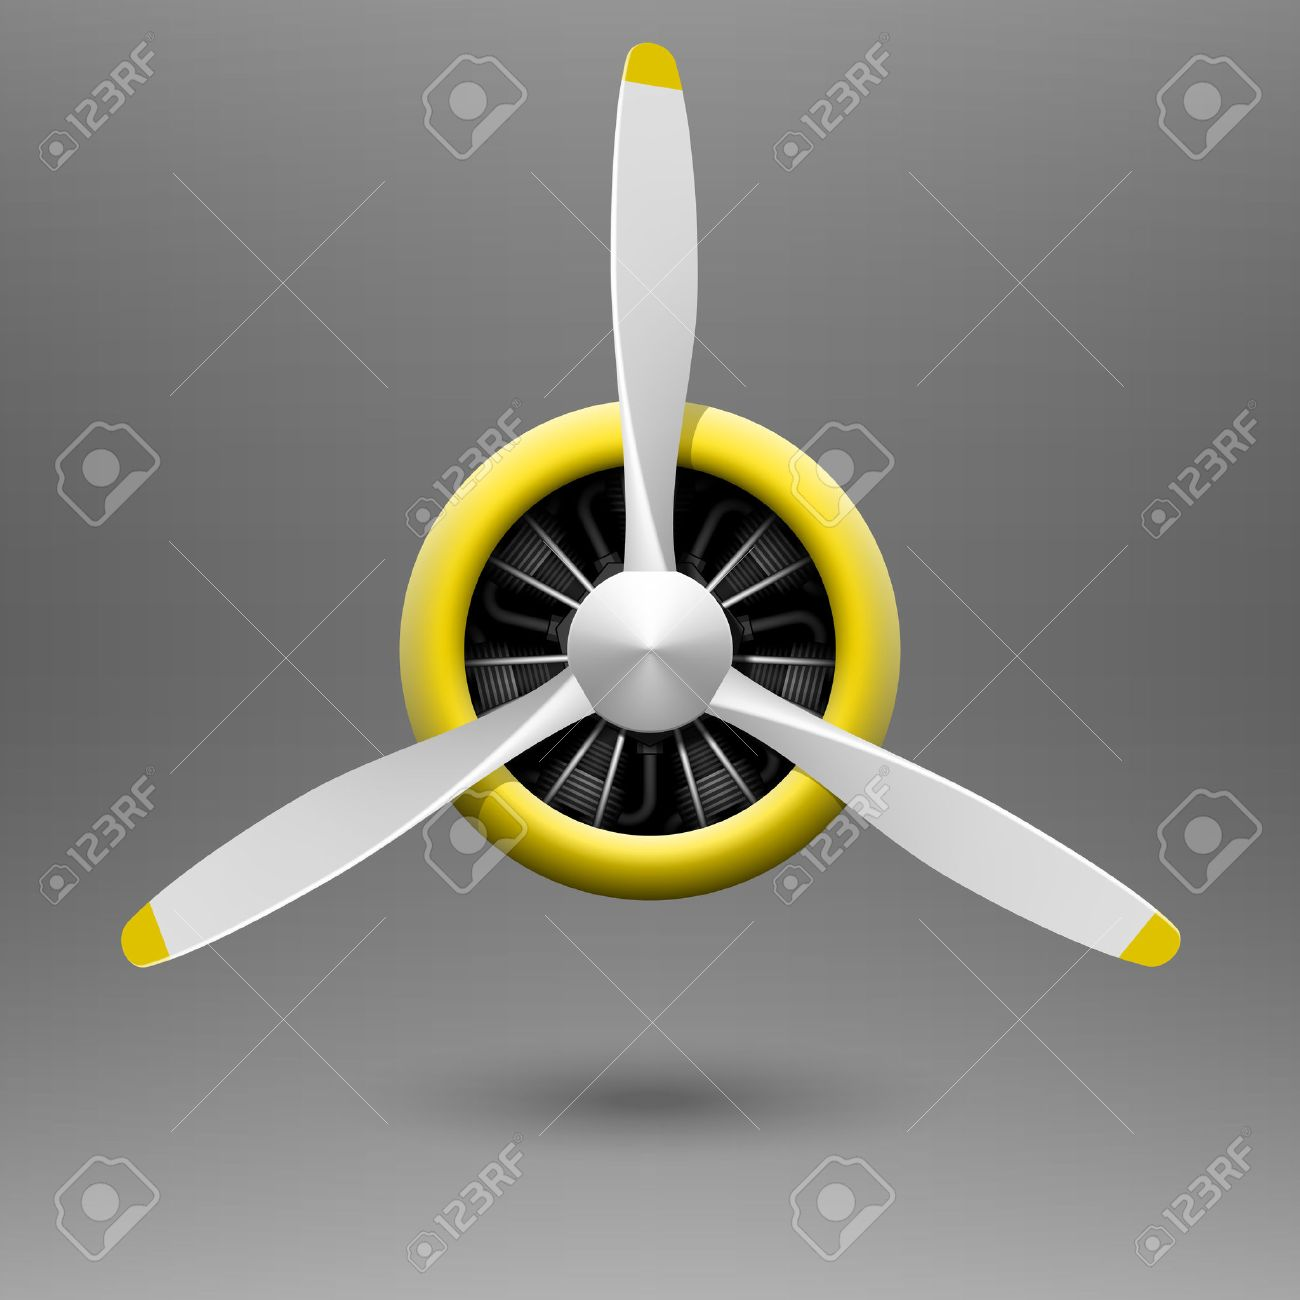 Vintage Airplane Propeller With Radial Engine Royalty Free Cliparts.